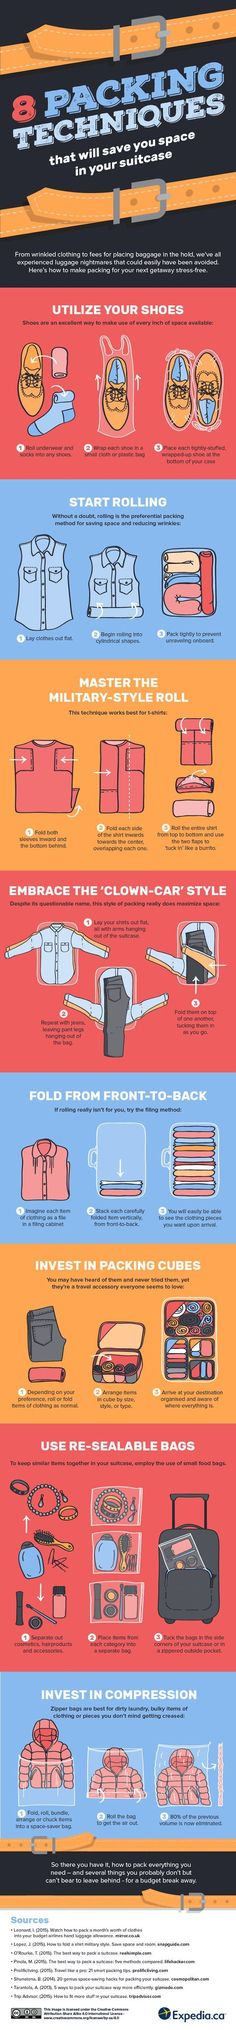 Avoid luggage nightmares with these great packing techniques!